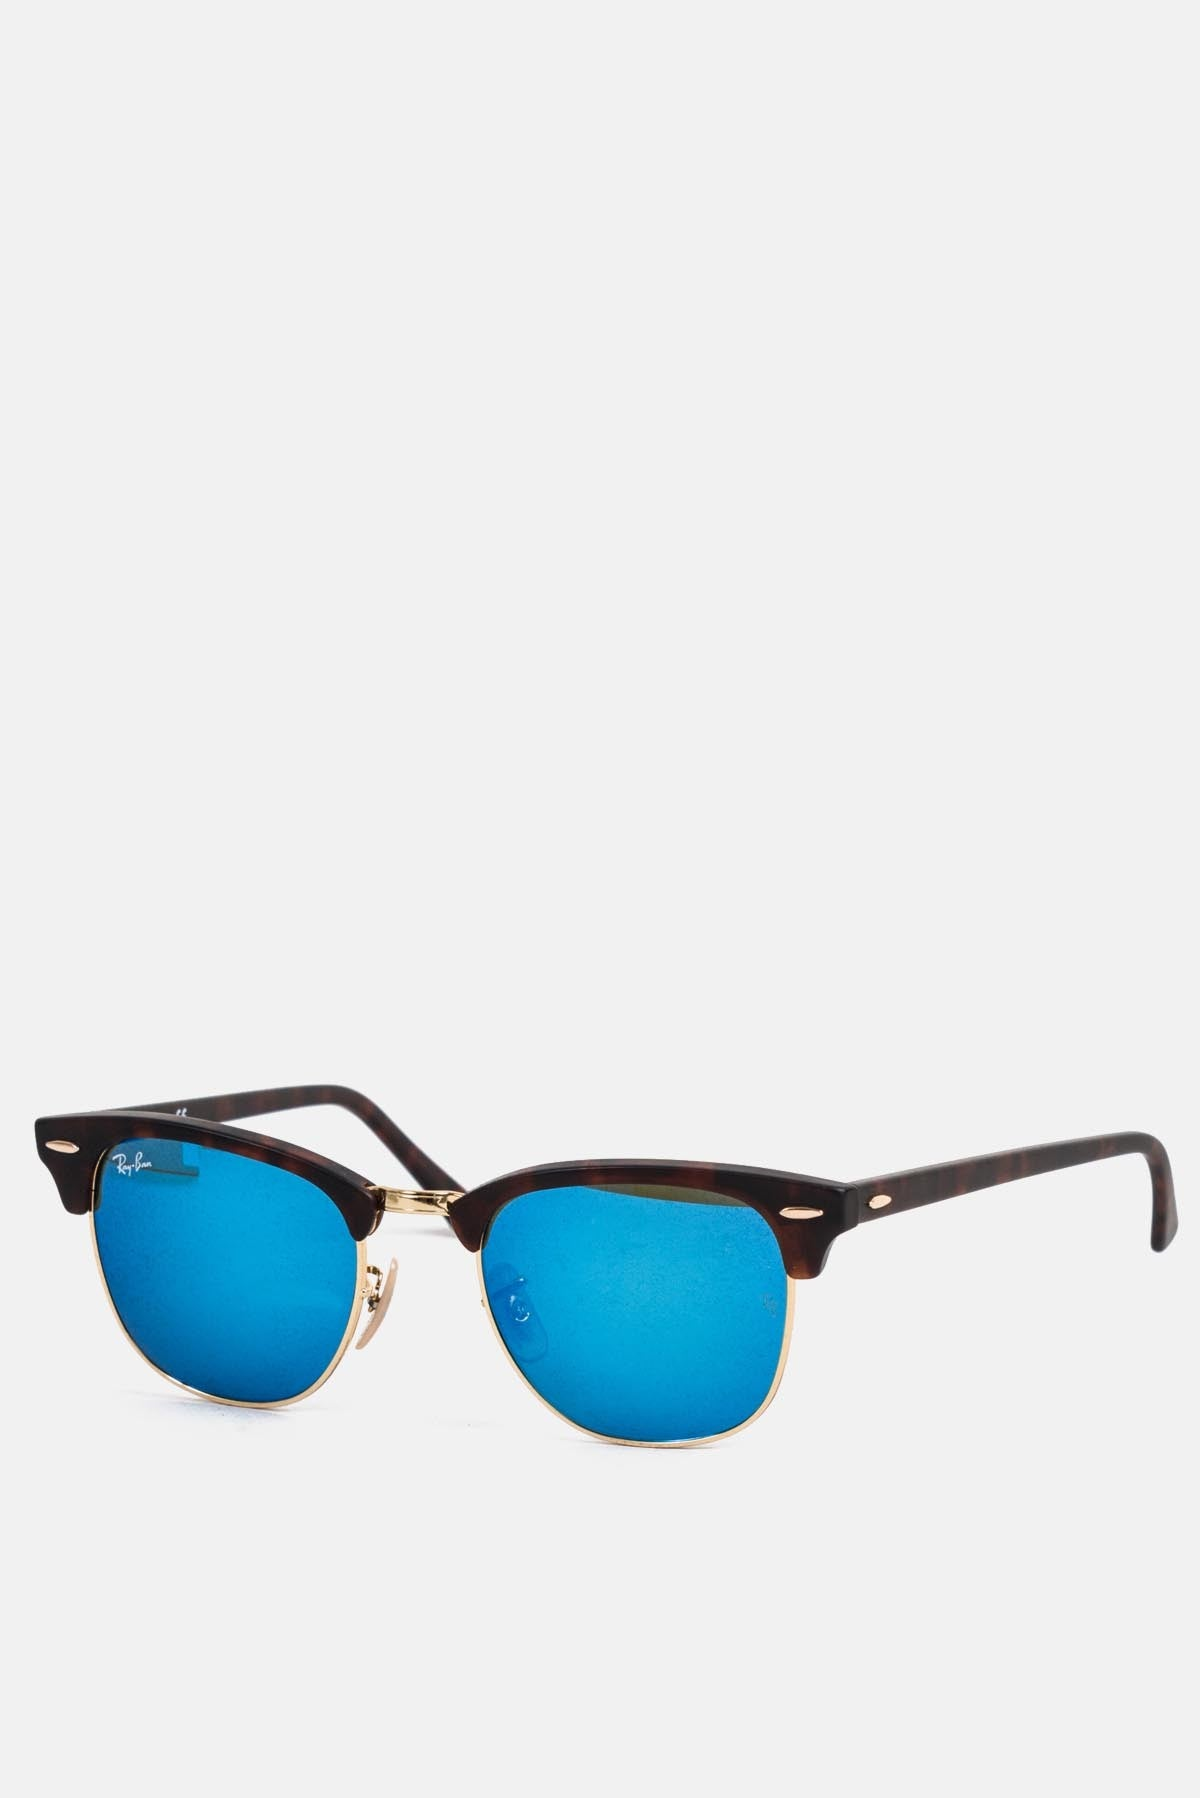 Ray-Ban Clubmaster Sunglasses available from Priory 556436fd0b